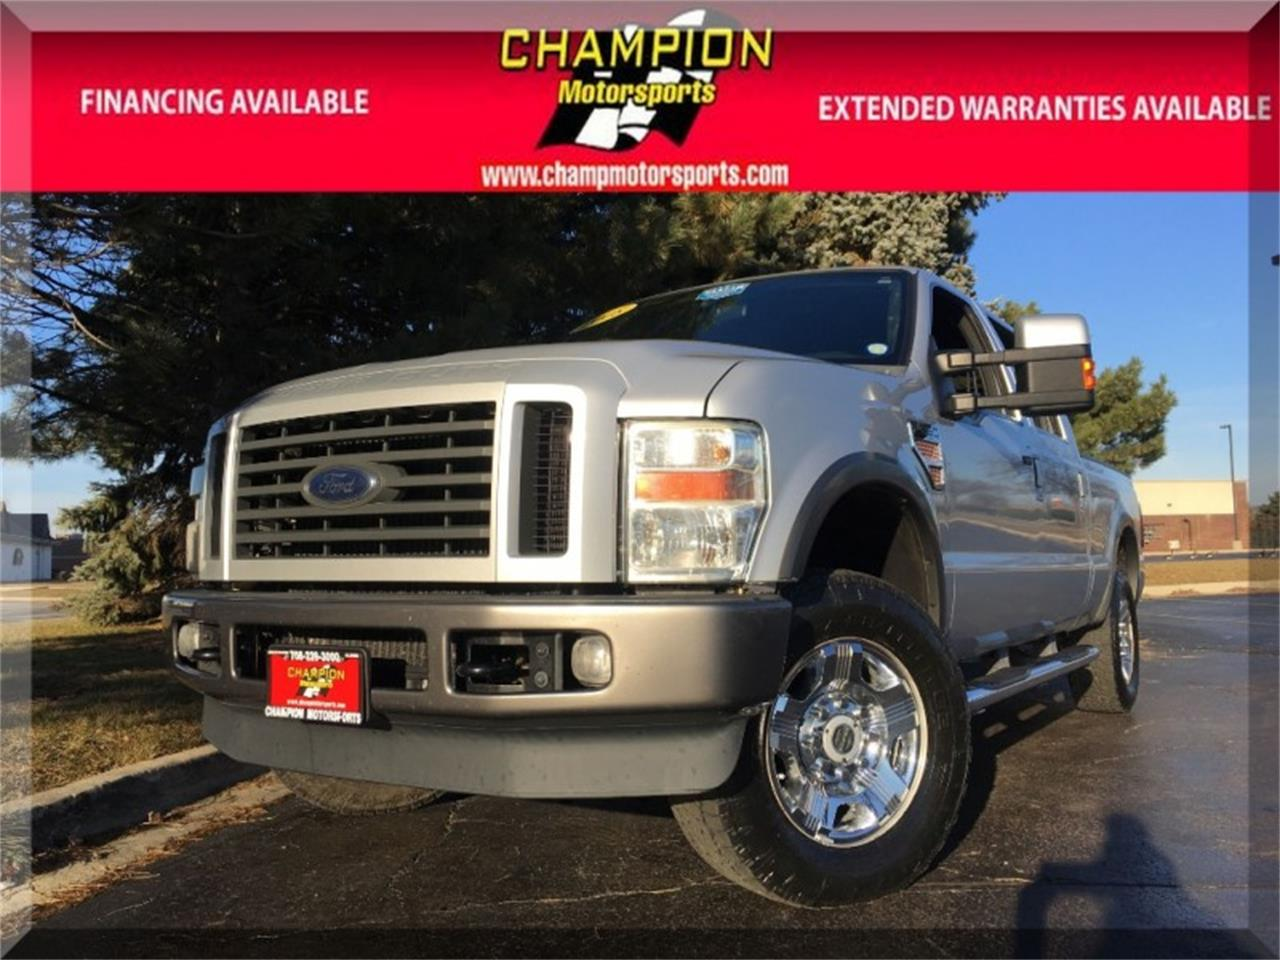 For Sale: 2008 Ford F250 in Crestwood, Illinois